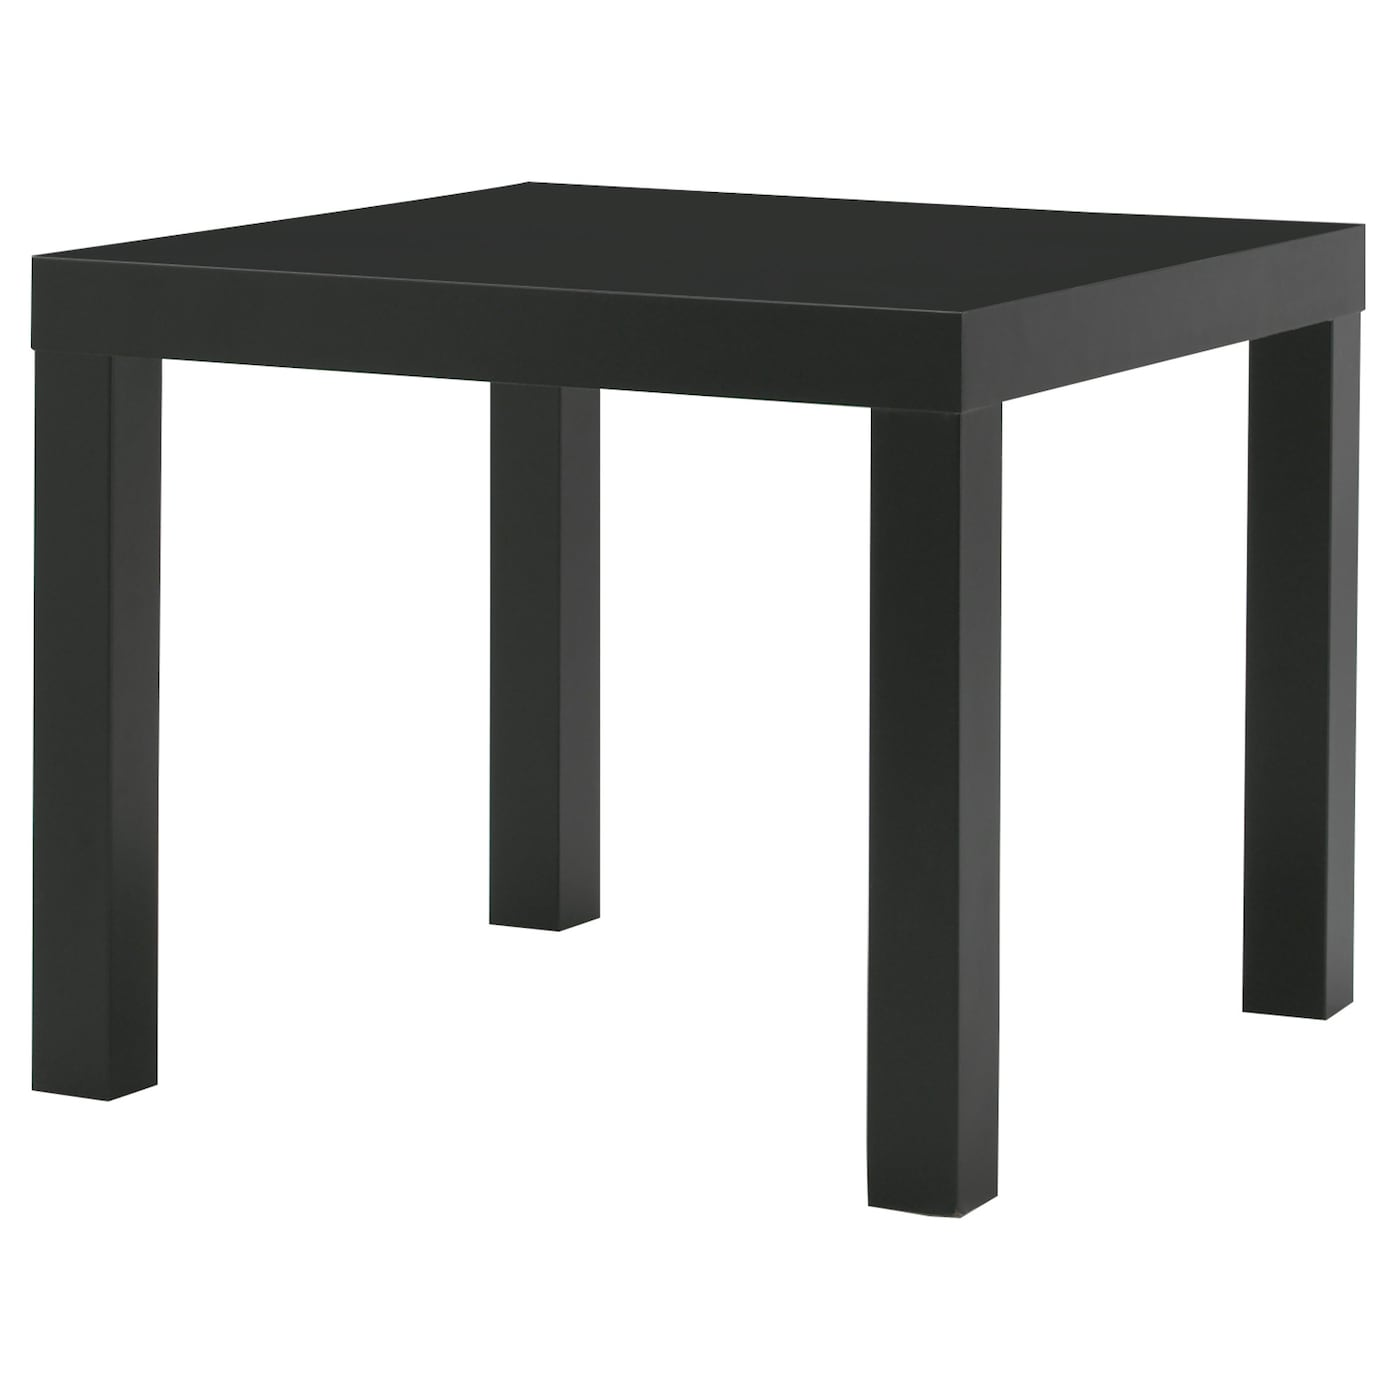 Lack side table black 55x55 cm ikea - Table basse lack ikea ...